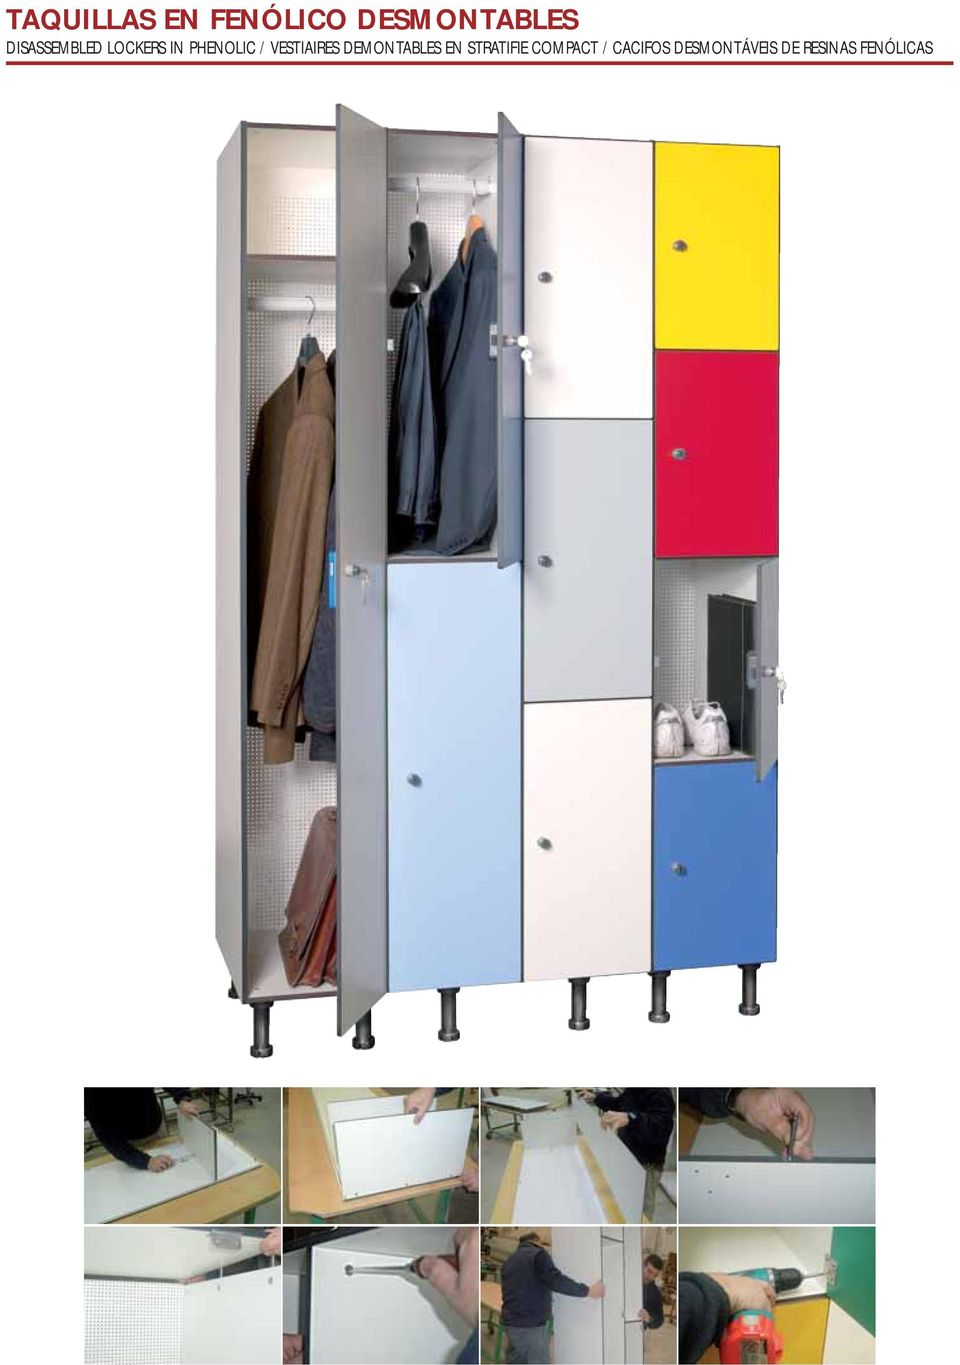 VESTIAIRES DEMONTABLES EN STRATIFIE